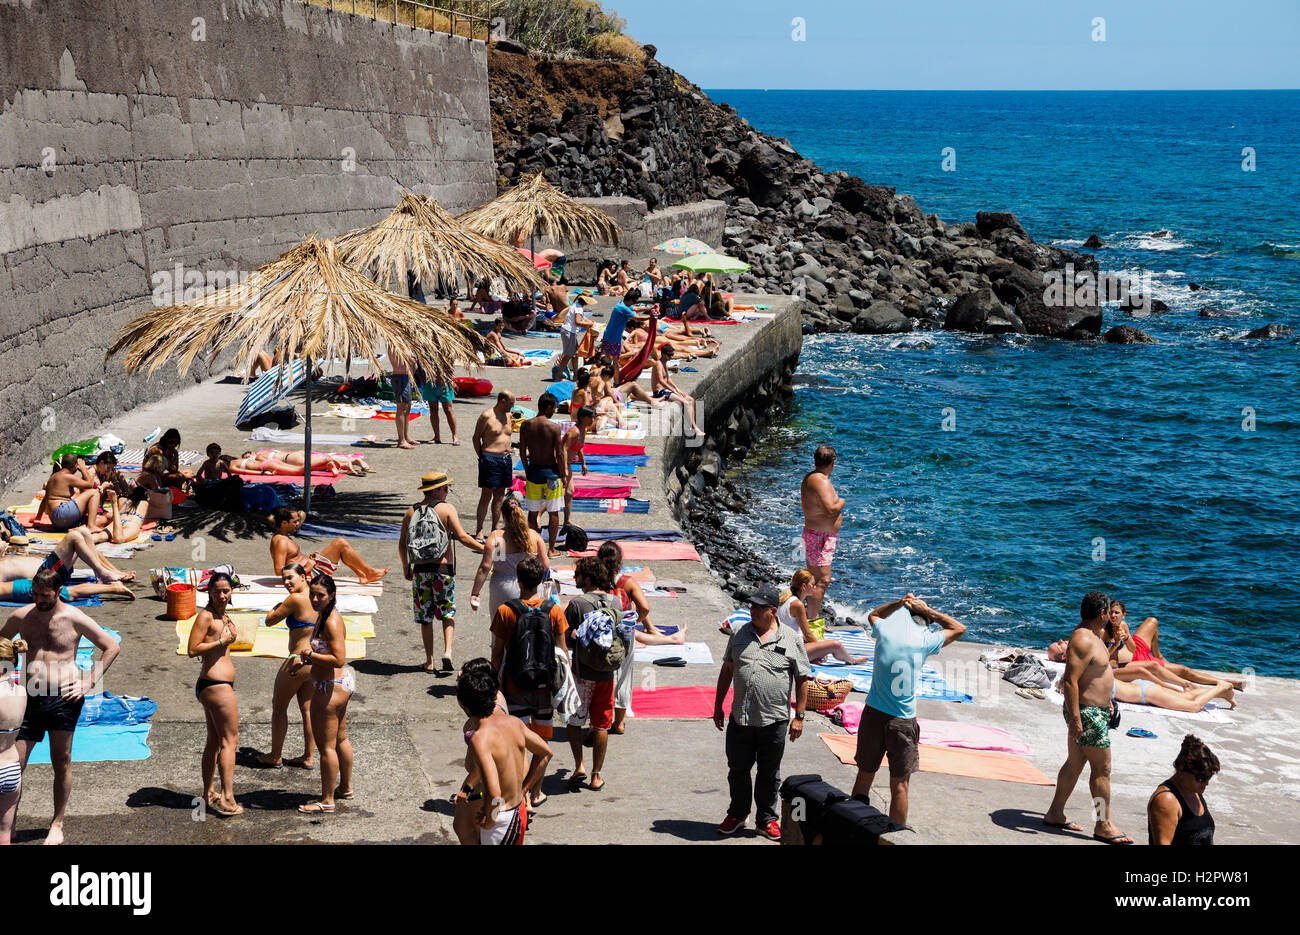 People enjoy the summer weather going swimming in the atlantic ocean at the rocky beach of Jardim do Mar - Stock Image